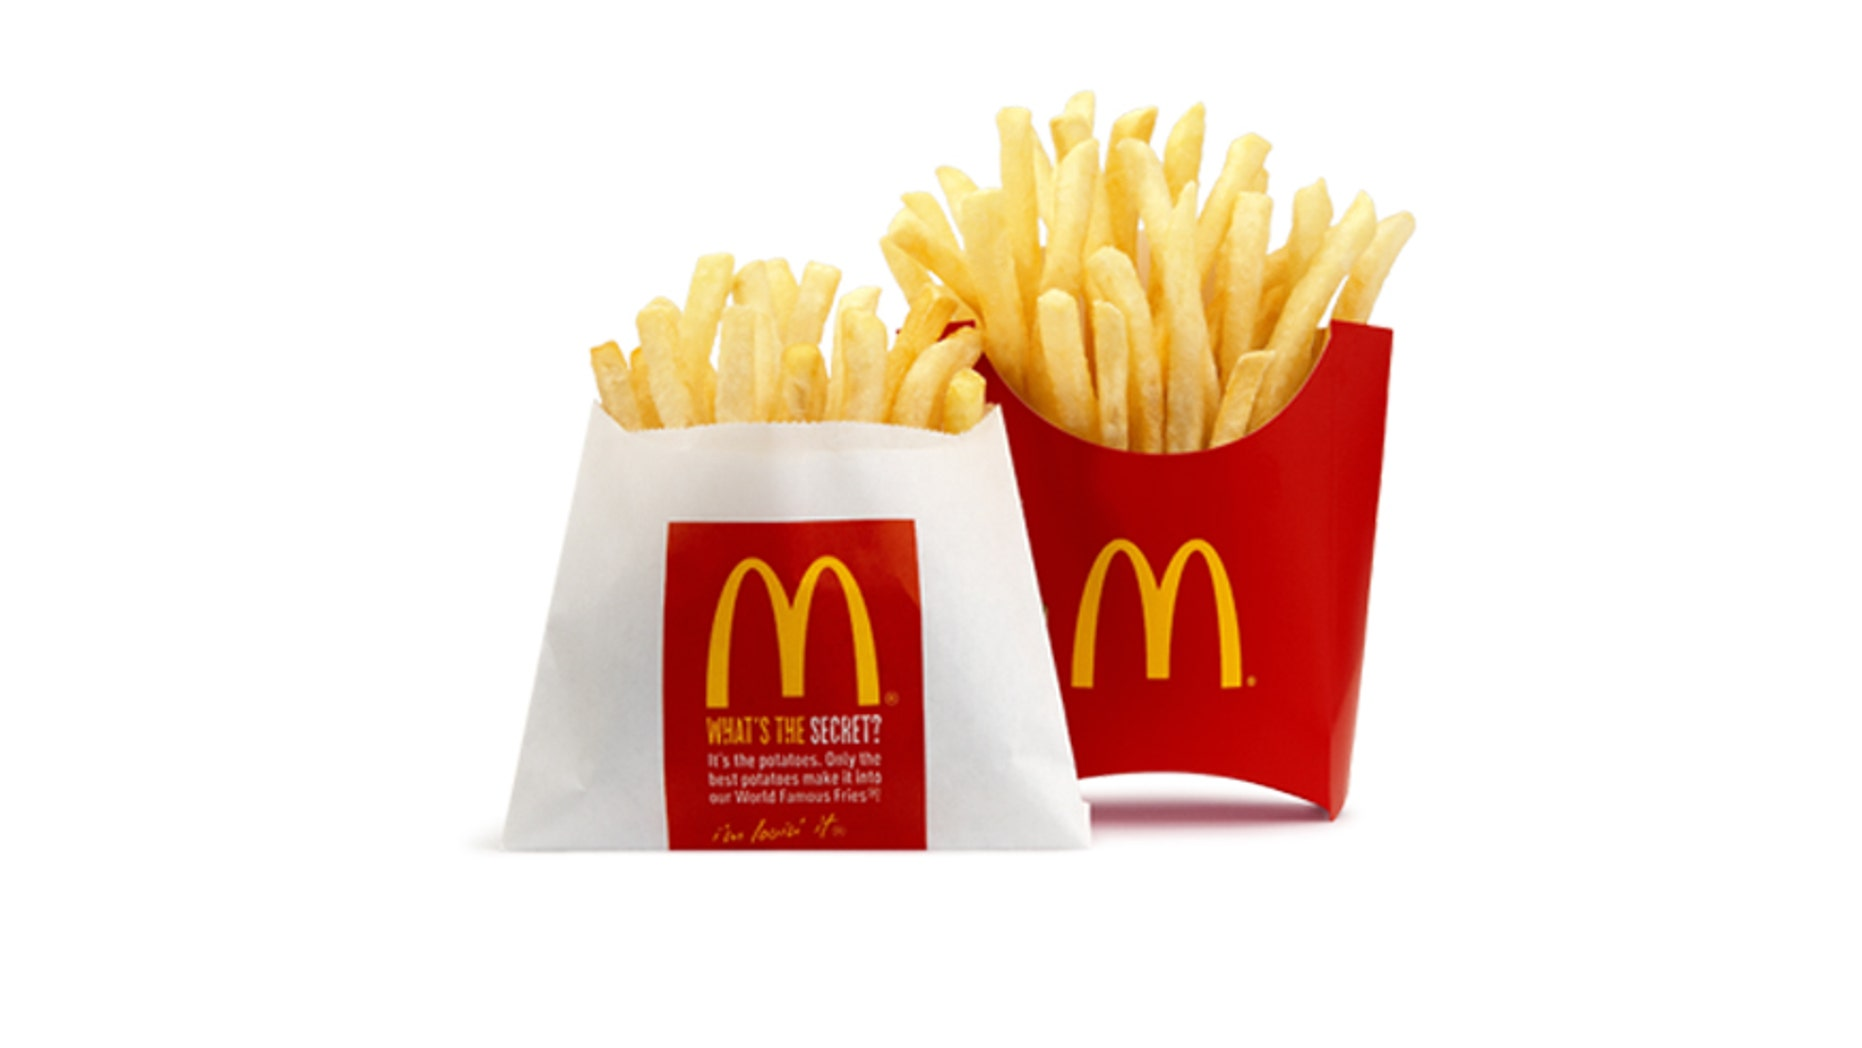 McDonald's fries have more ingredients in the U.S.